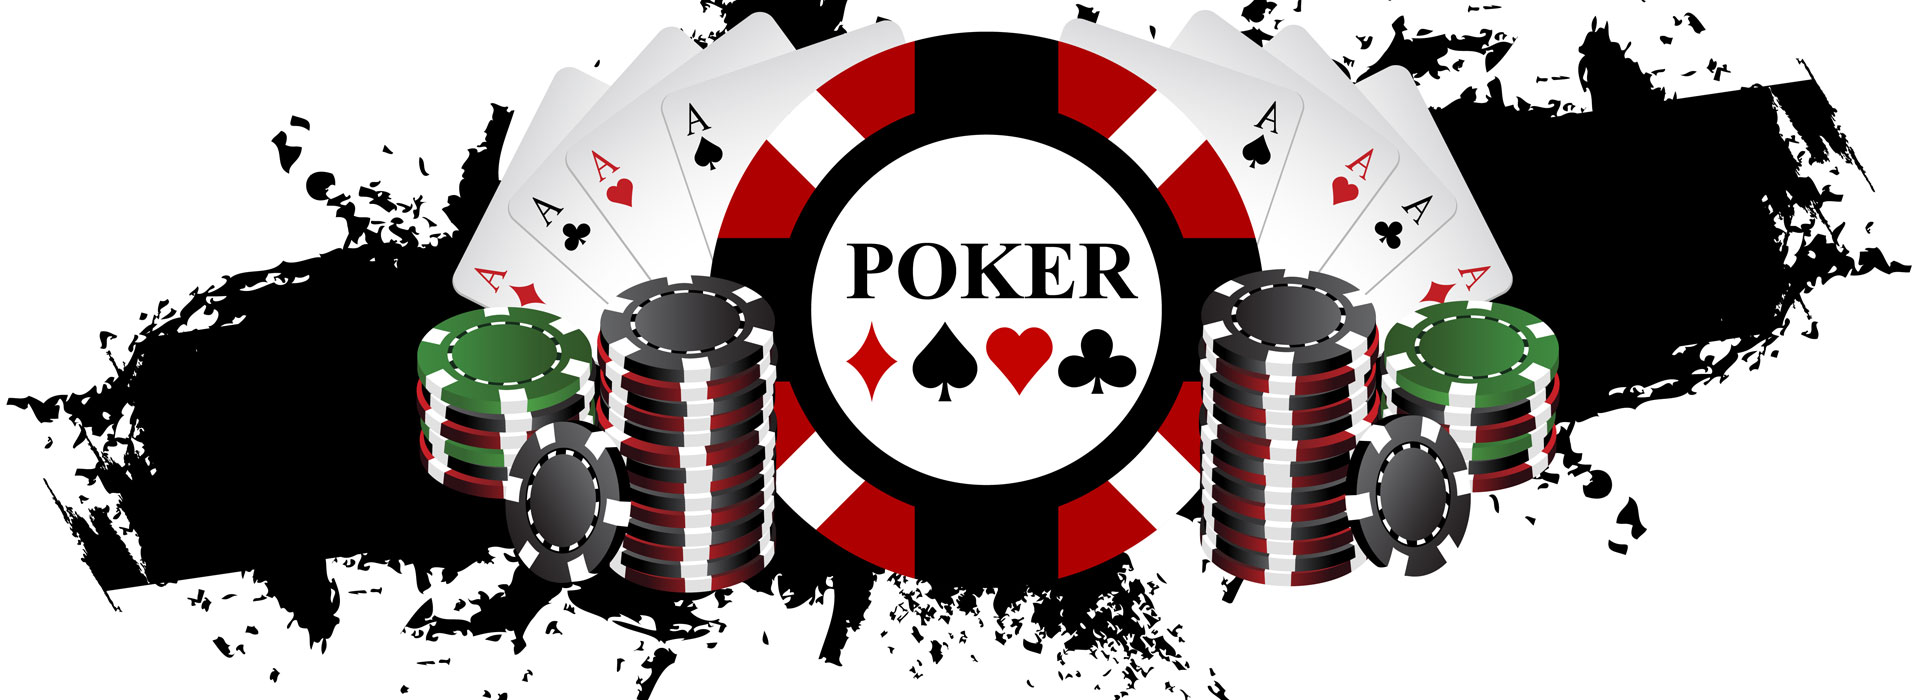 the poker game in casino royale